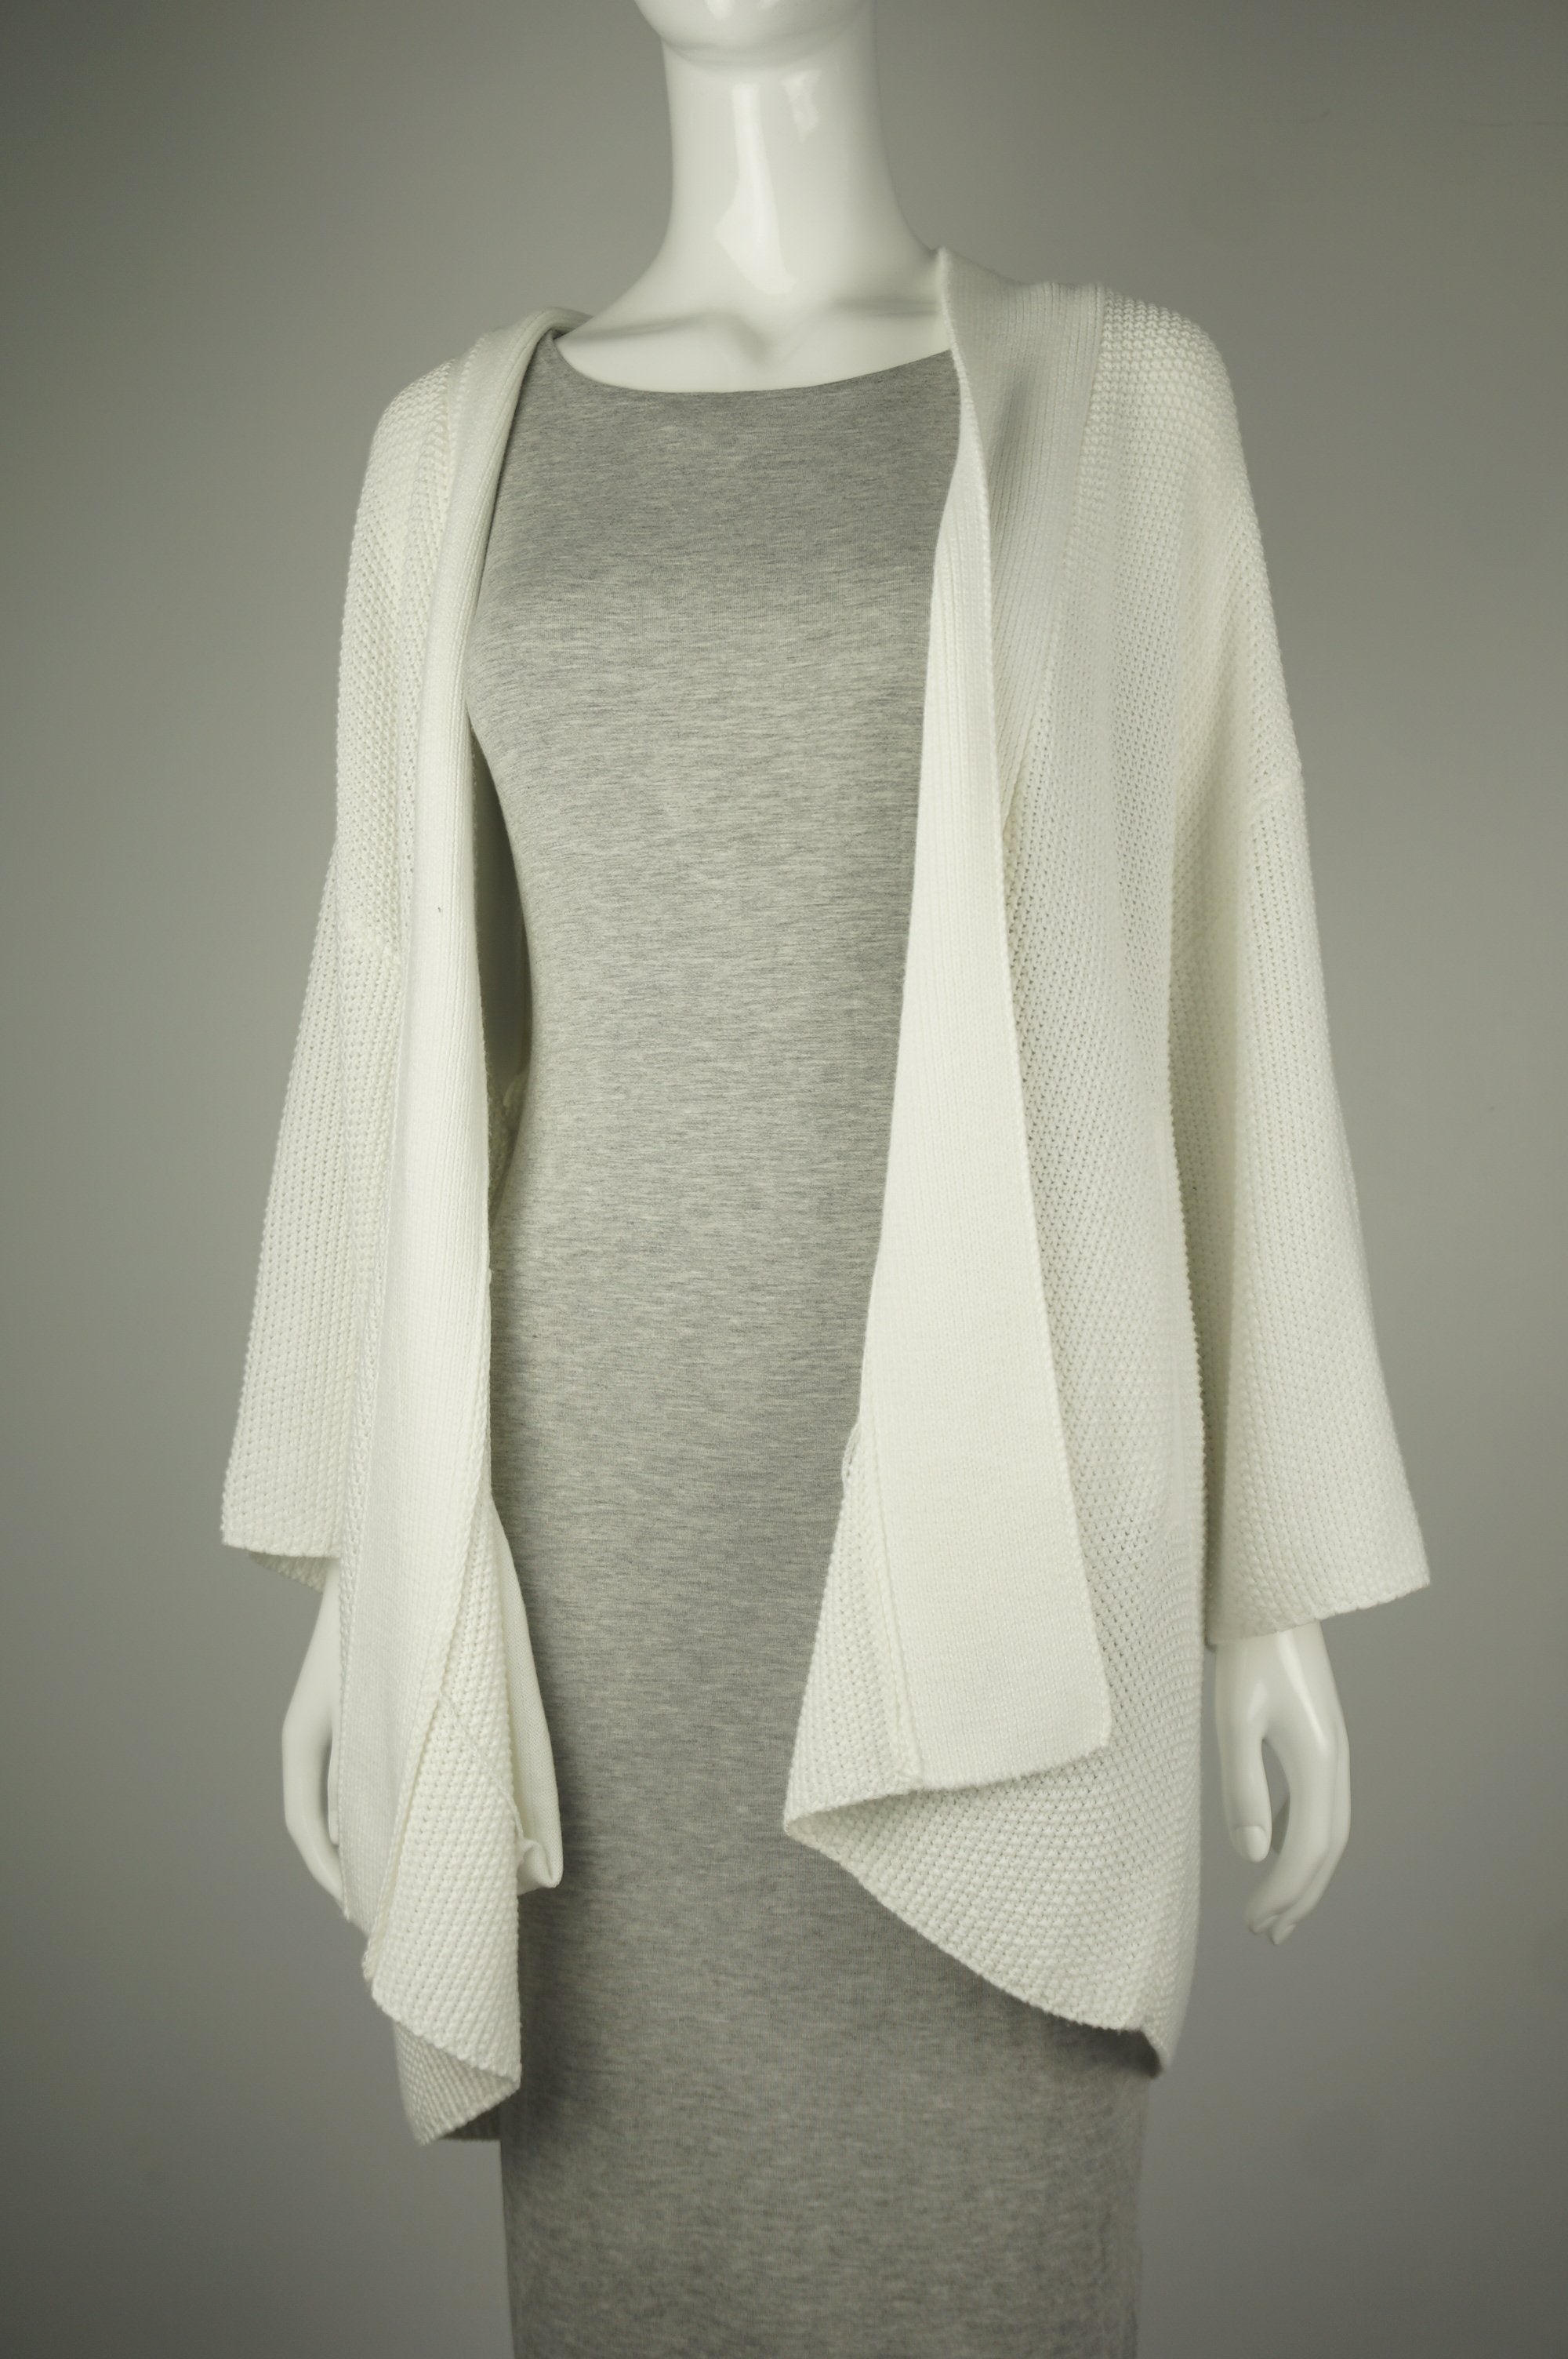 Oak + Fort White Cardigan, Simple and elegant white cardigan for the chilly office., White, 100% polyester, women's Jackets & Coats, women's White Jackets & Coats, Oak + Fort women's Jackets & Coats, Oak + Fort women's cardigan, women's simple cardigan, women's simple and white cardigan, women's drape jacket, women's drape coat